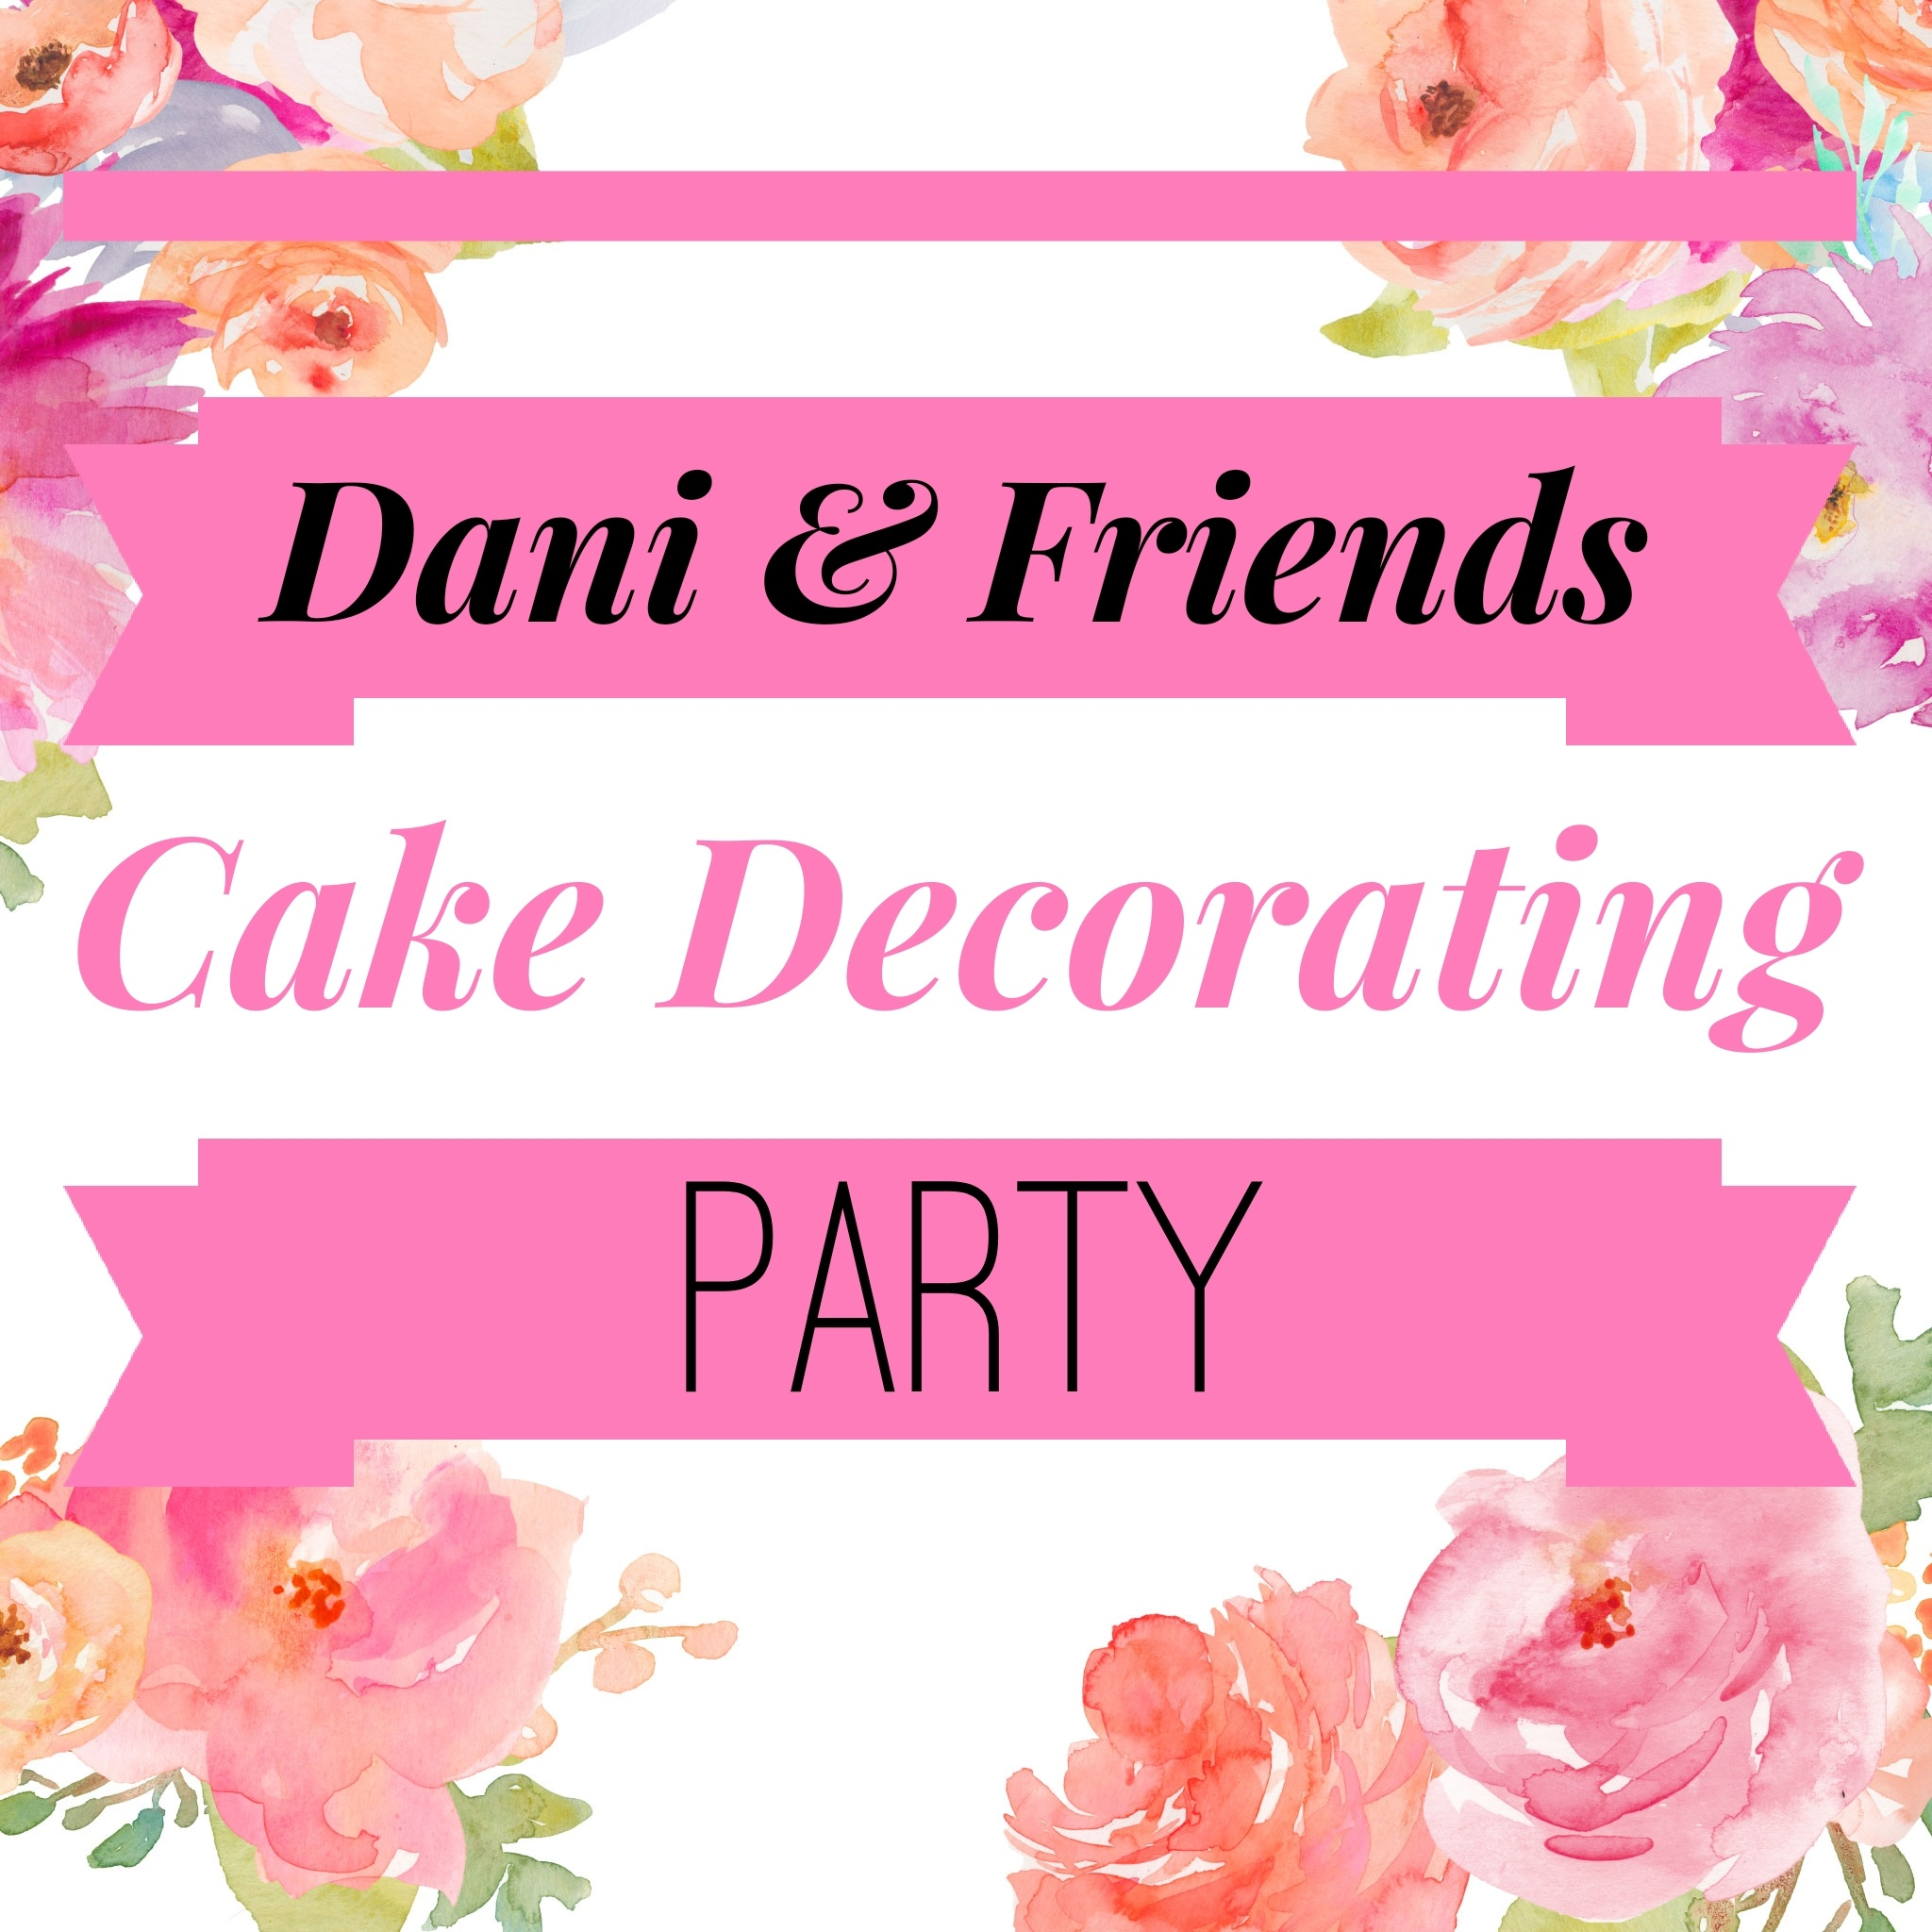 Dani & Friends Cake Decorating Party Aug 2nd 12-2:30pm